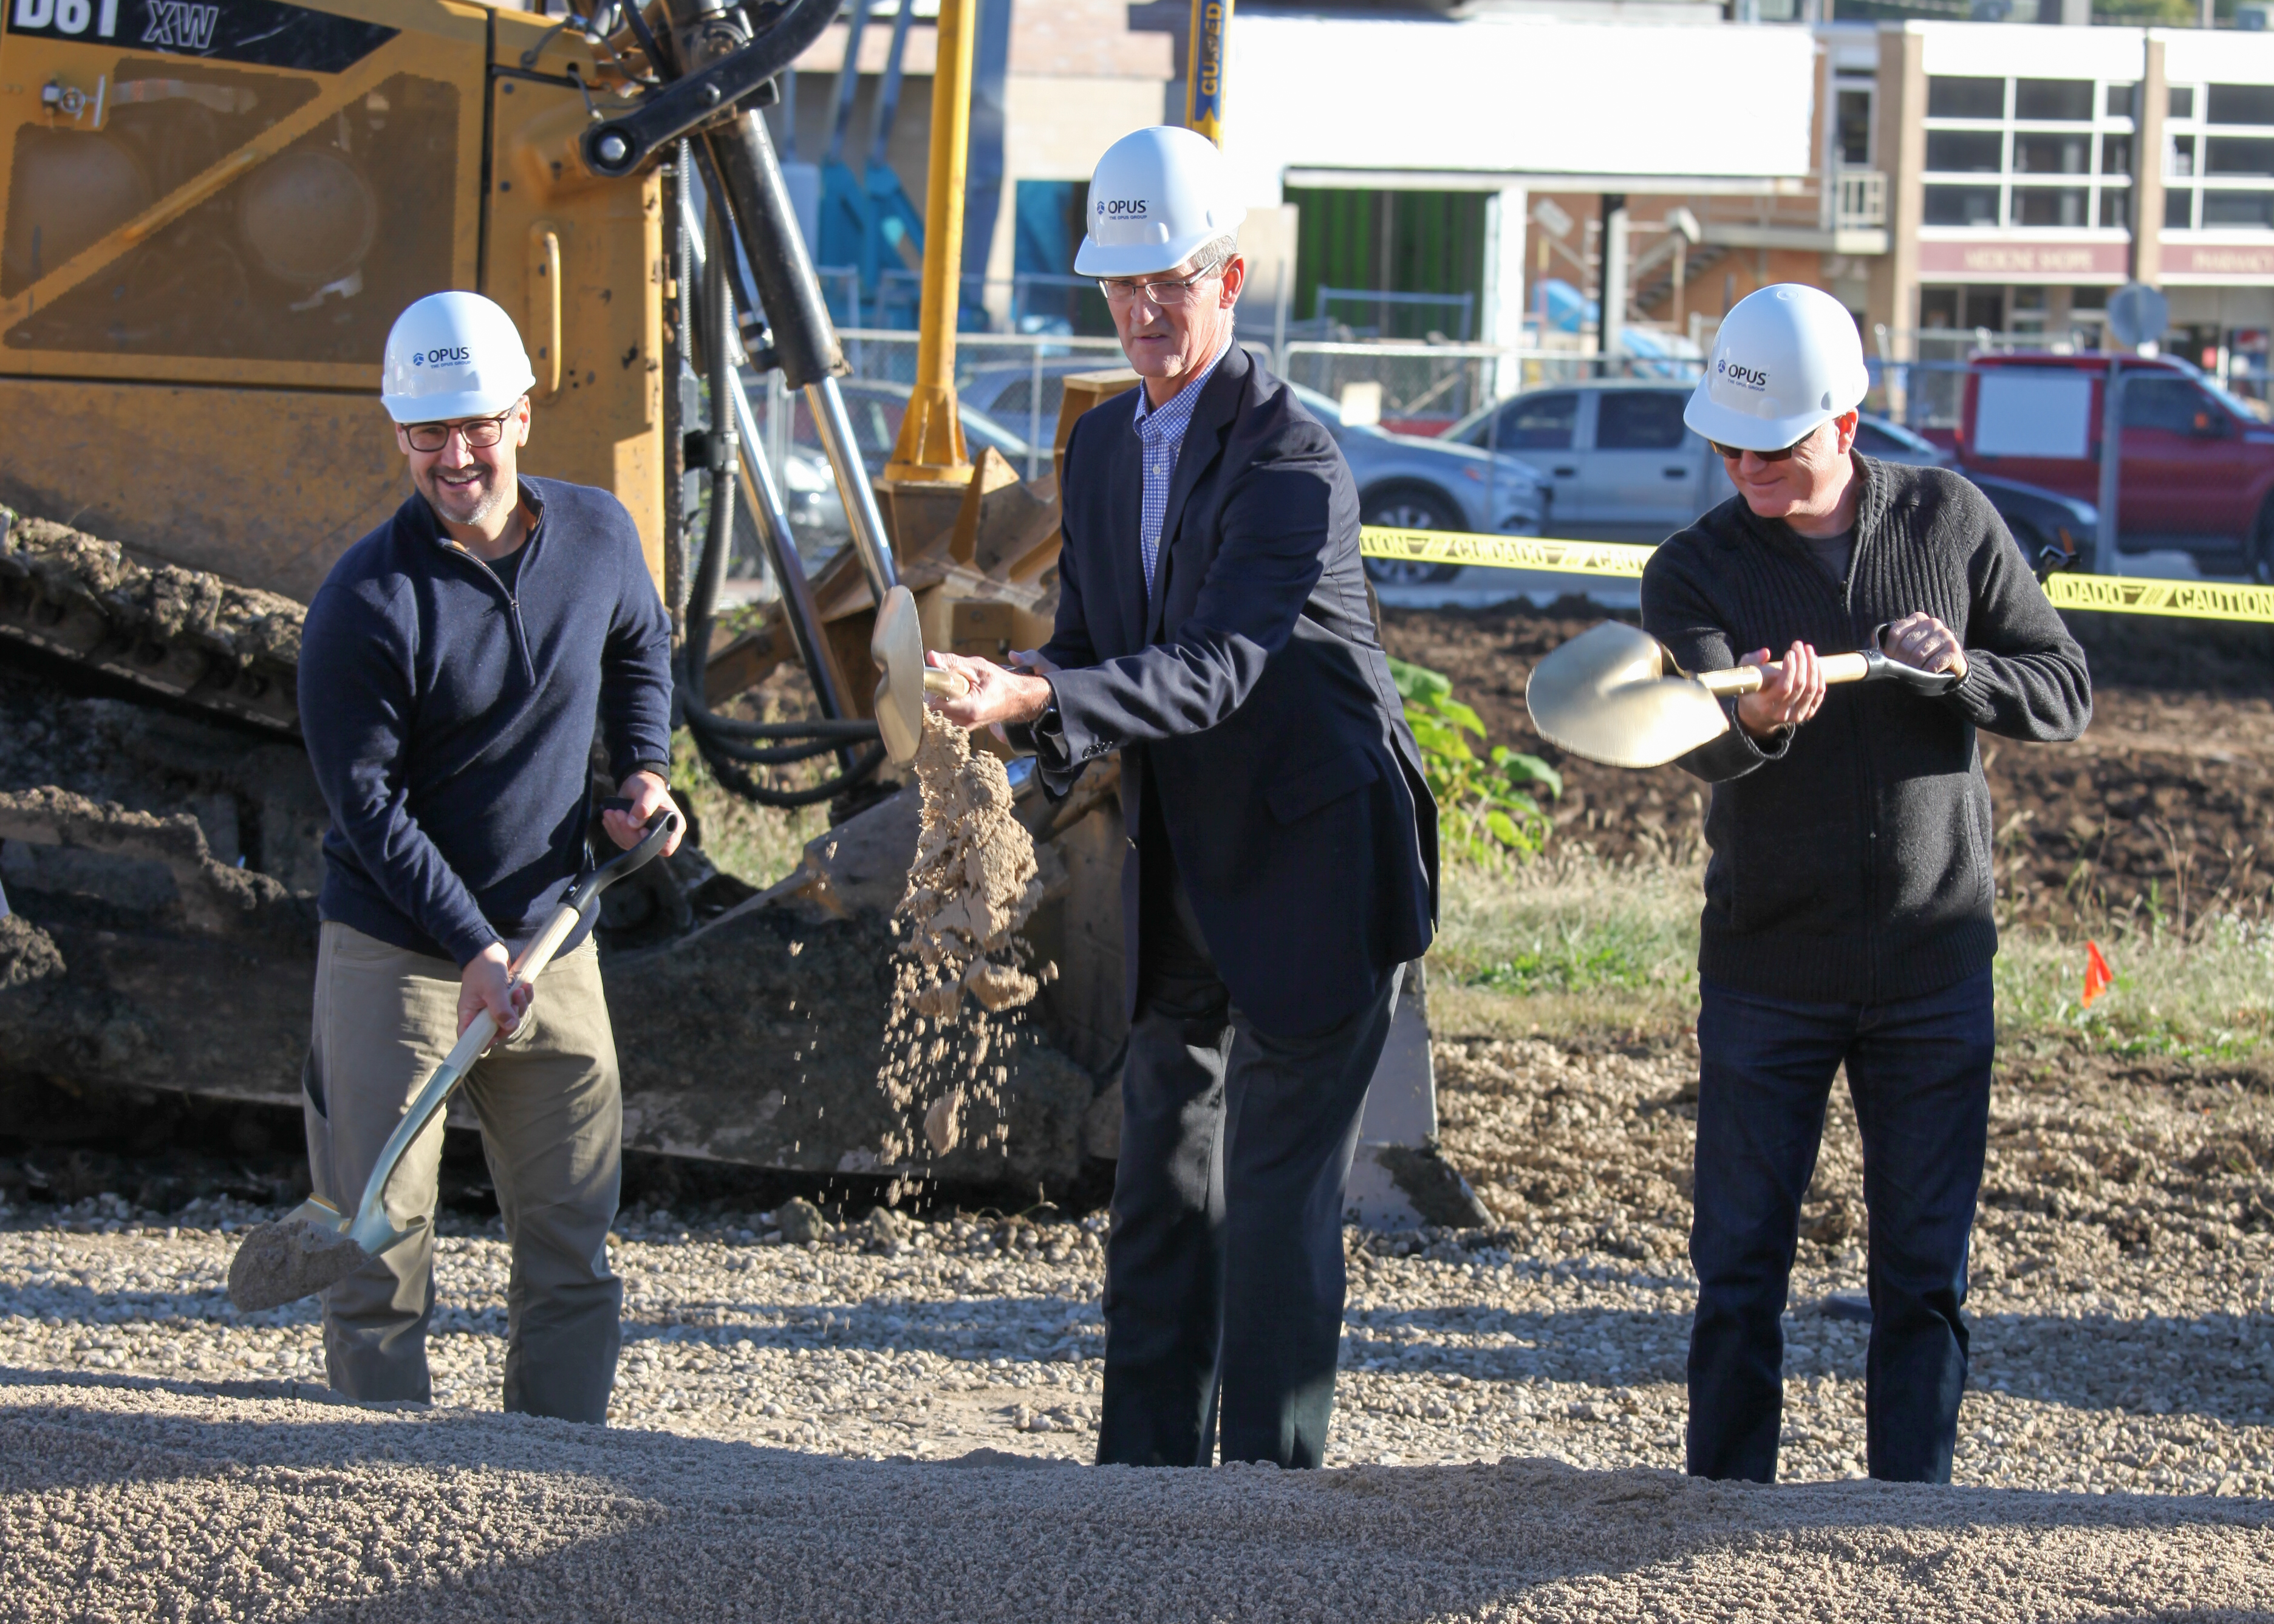 Edison District breaks ground in downtown Overland Park